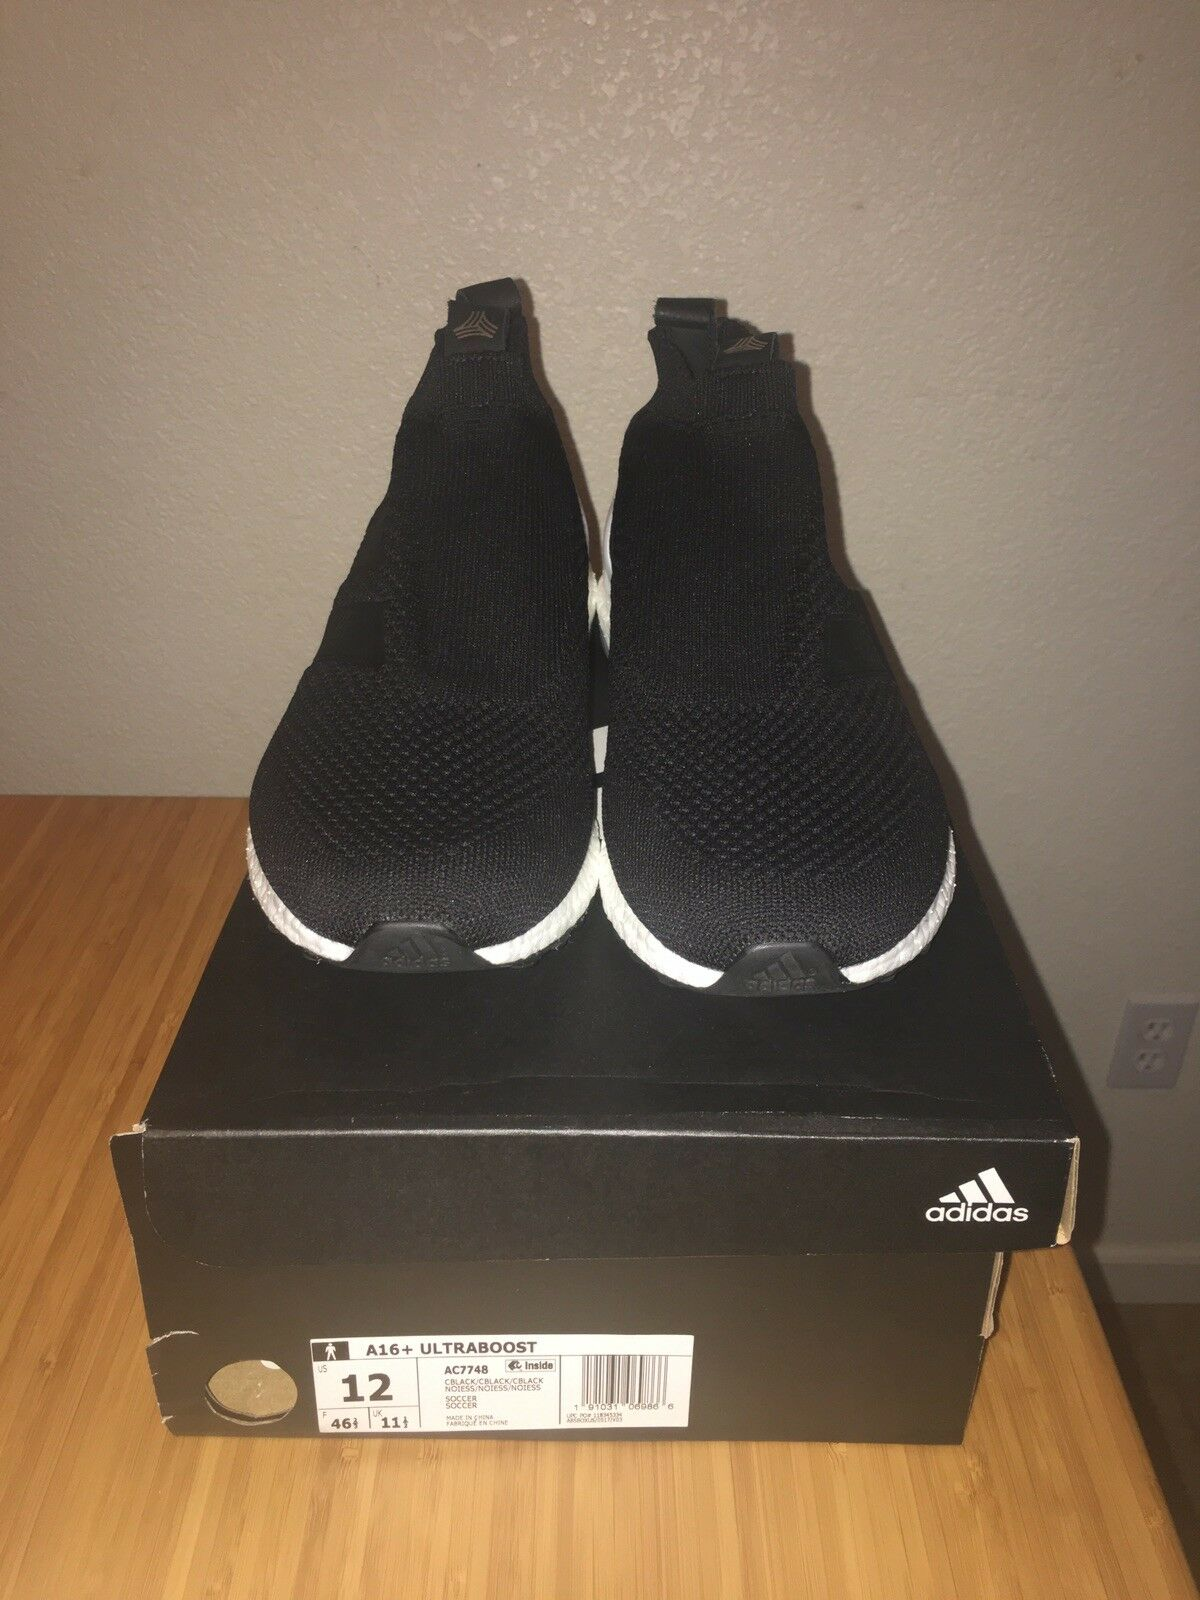 Adidas ace 16 purecontrol ultra boost, Black, White, White, White, Size 12 DS 06674d